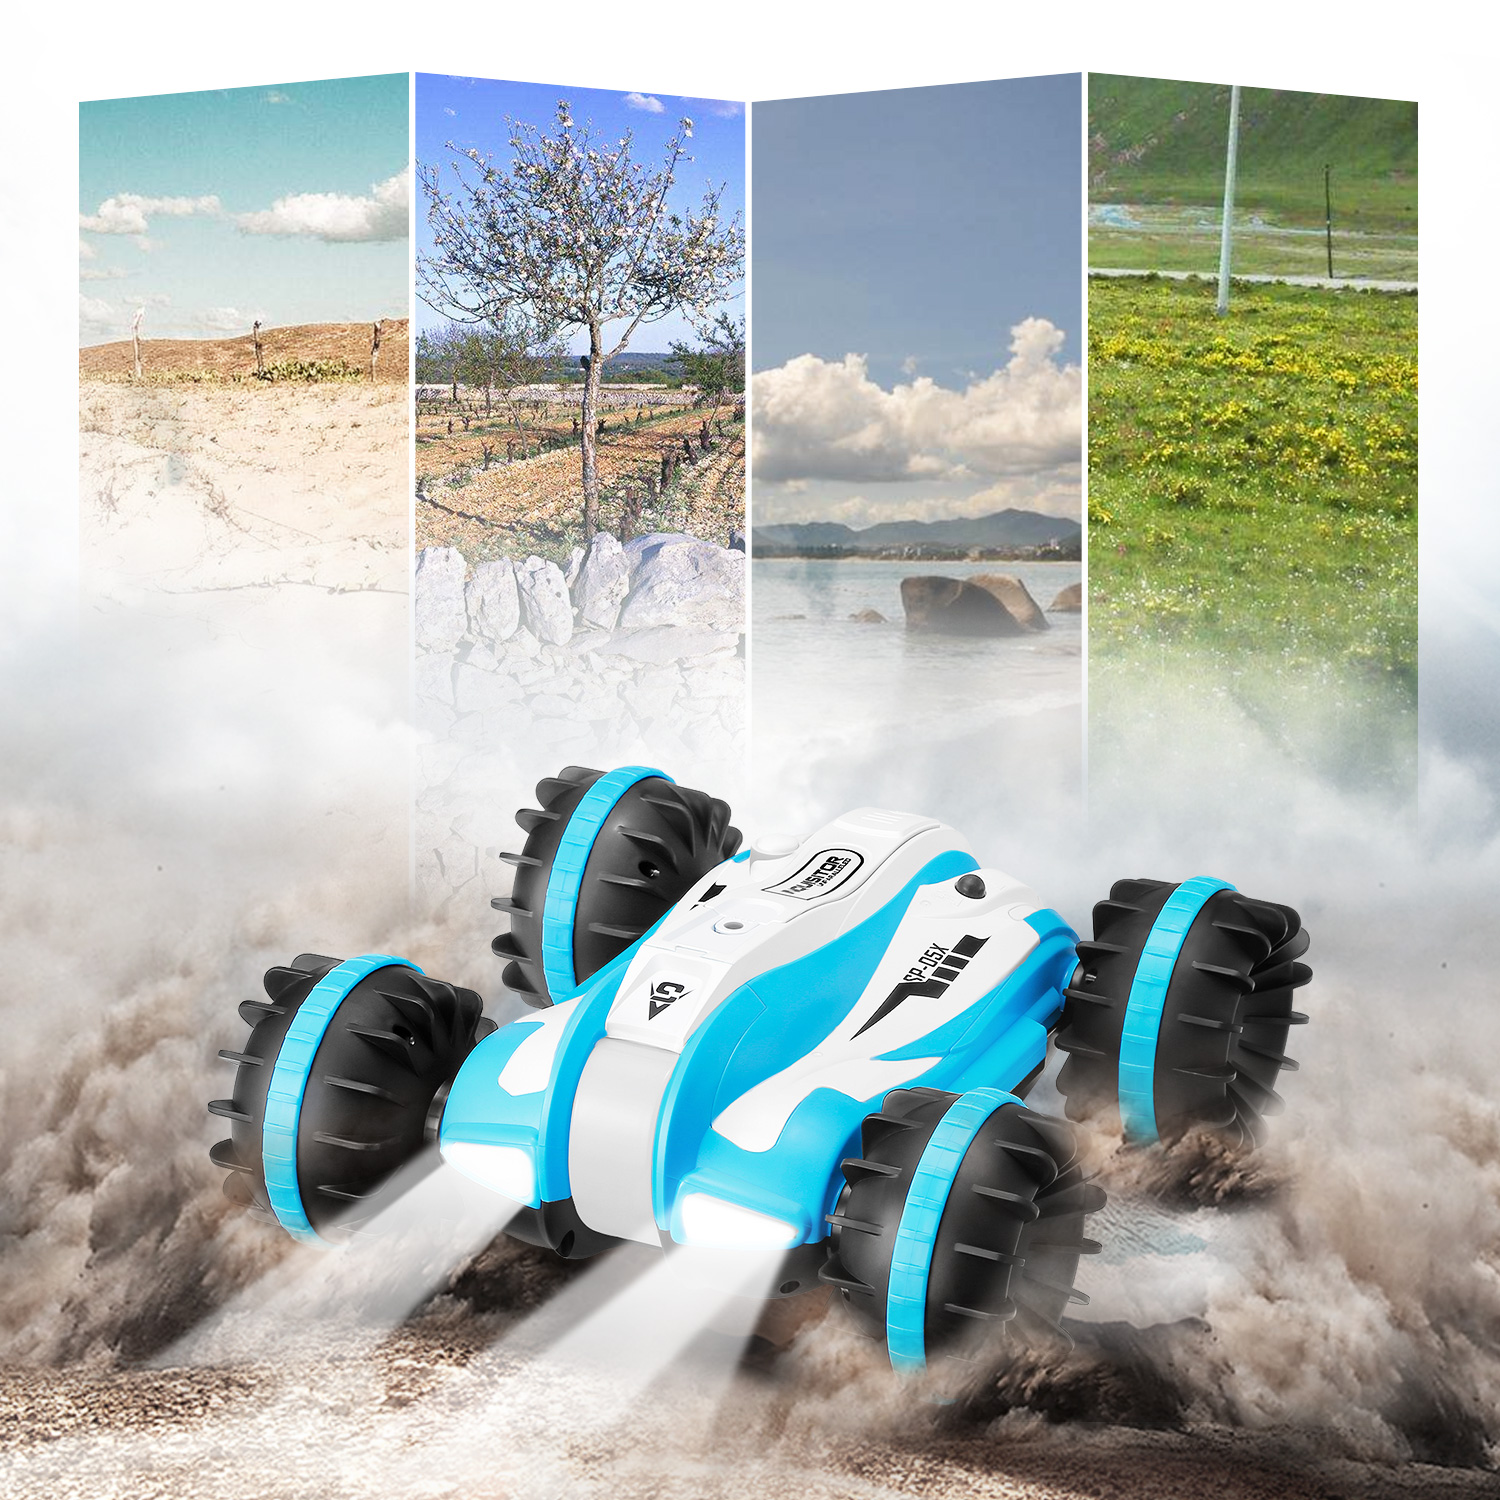 YED 1804 2.4GHz RC Car 6-Channel 1:12 Scale Amphibious Car 360-Degree Rotation Stunt Vehicle Toy Suitable For Water And Land